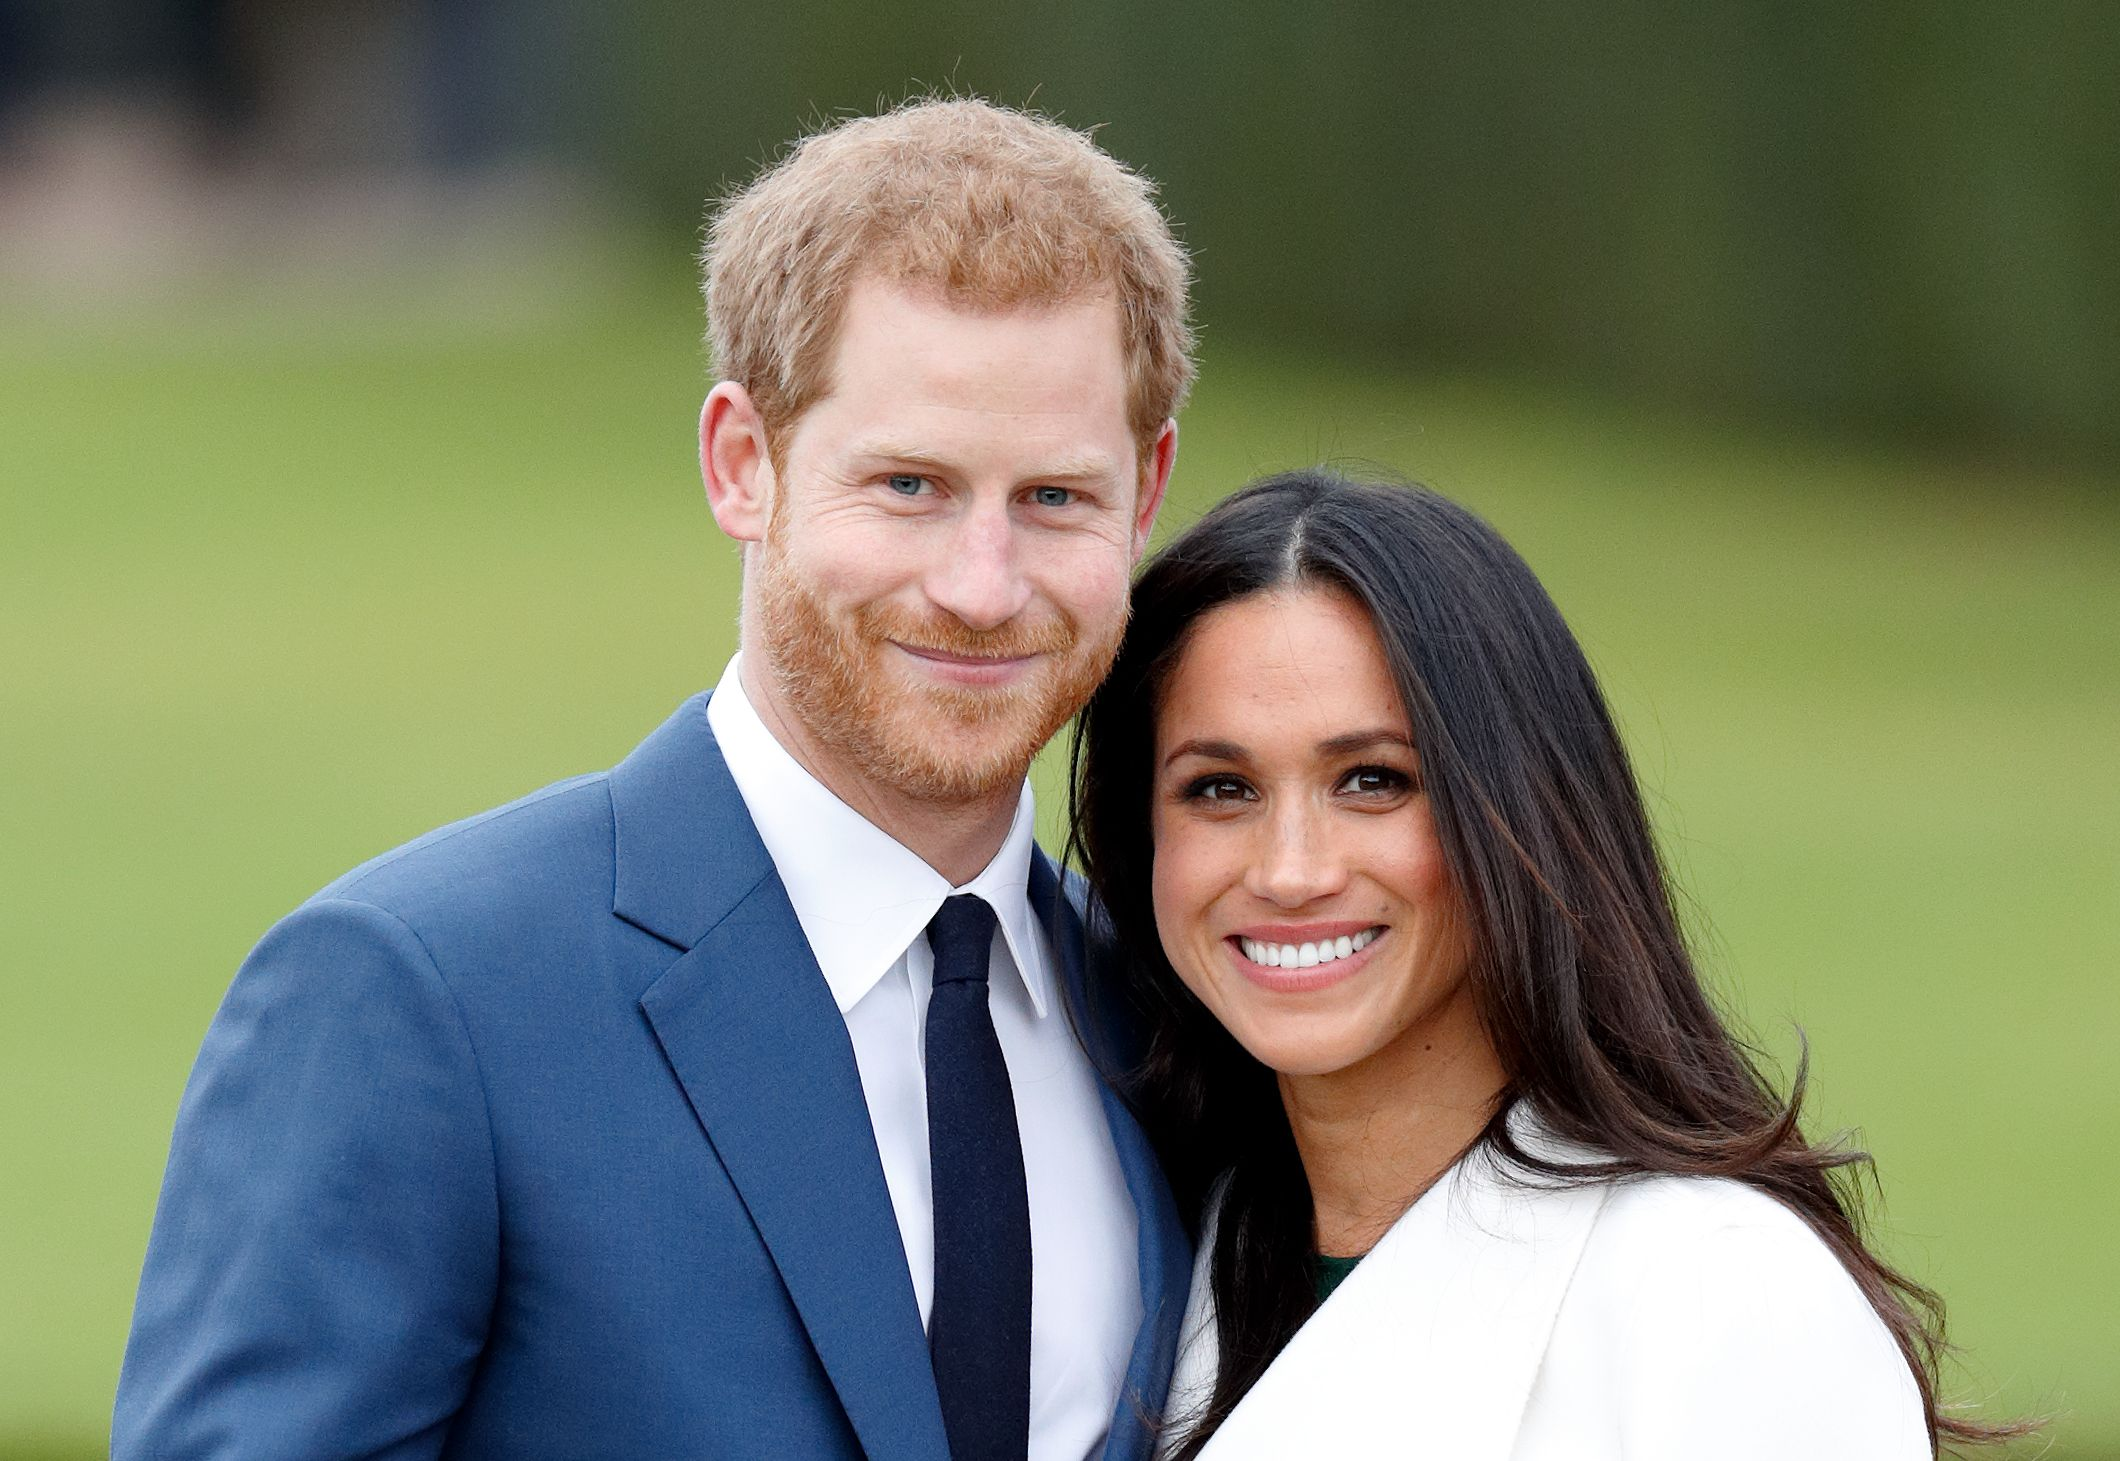 Meghan Markle and Prince Harry Just Laid Off Their Staff at Frogmore Cottage Ahead of Their Canada Move